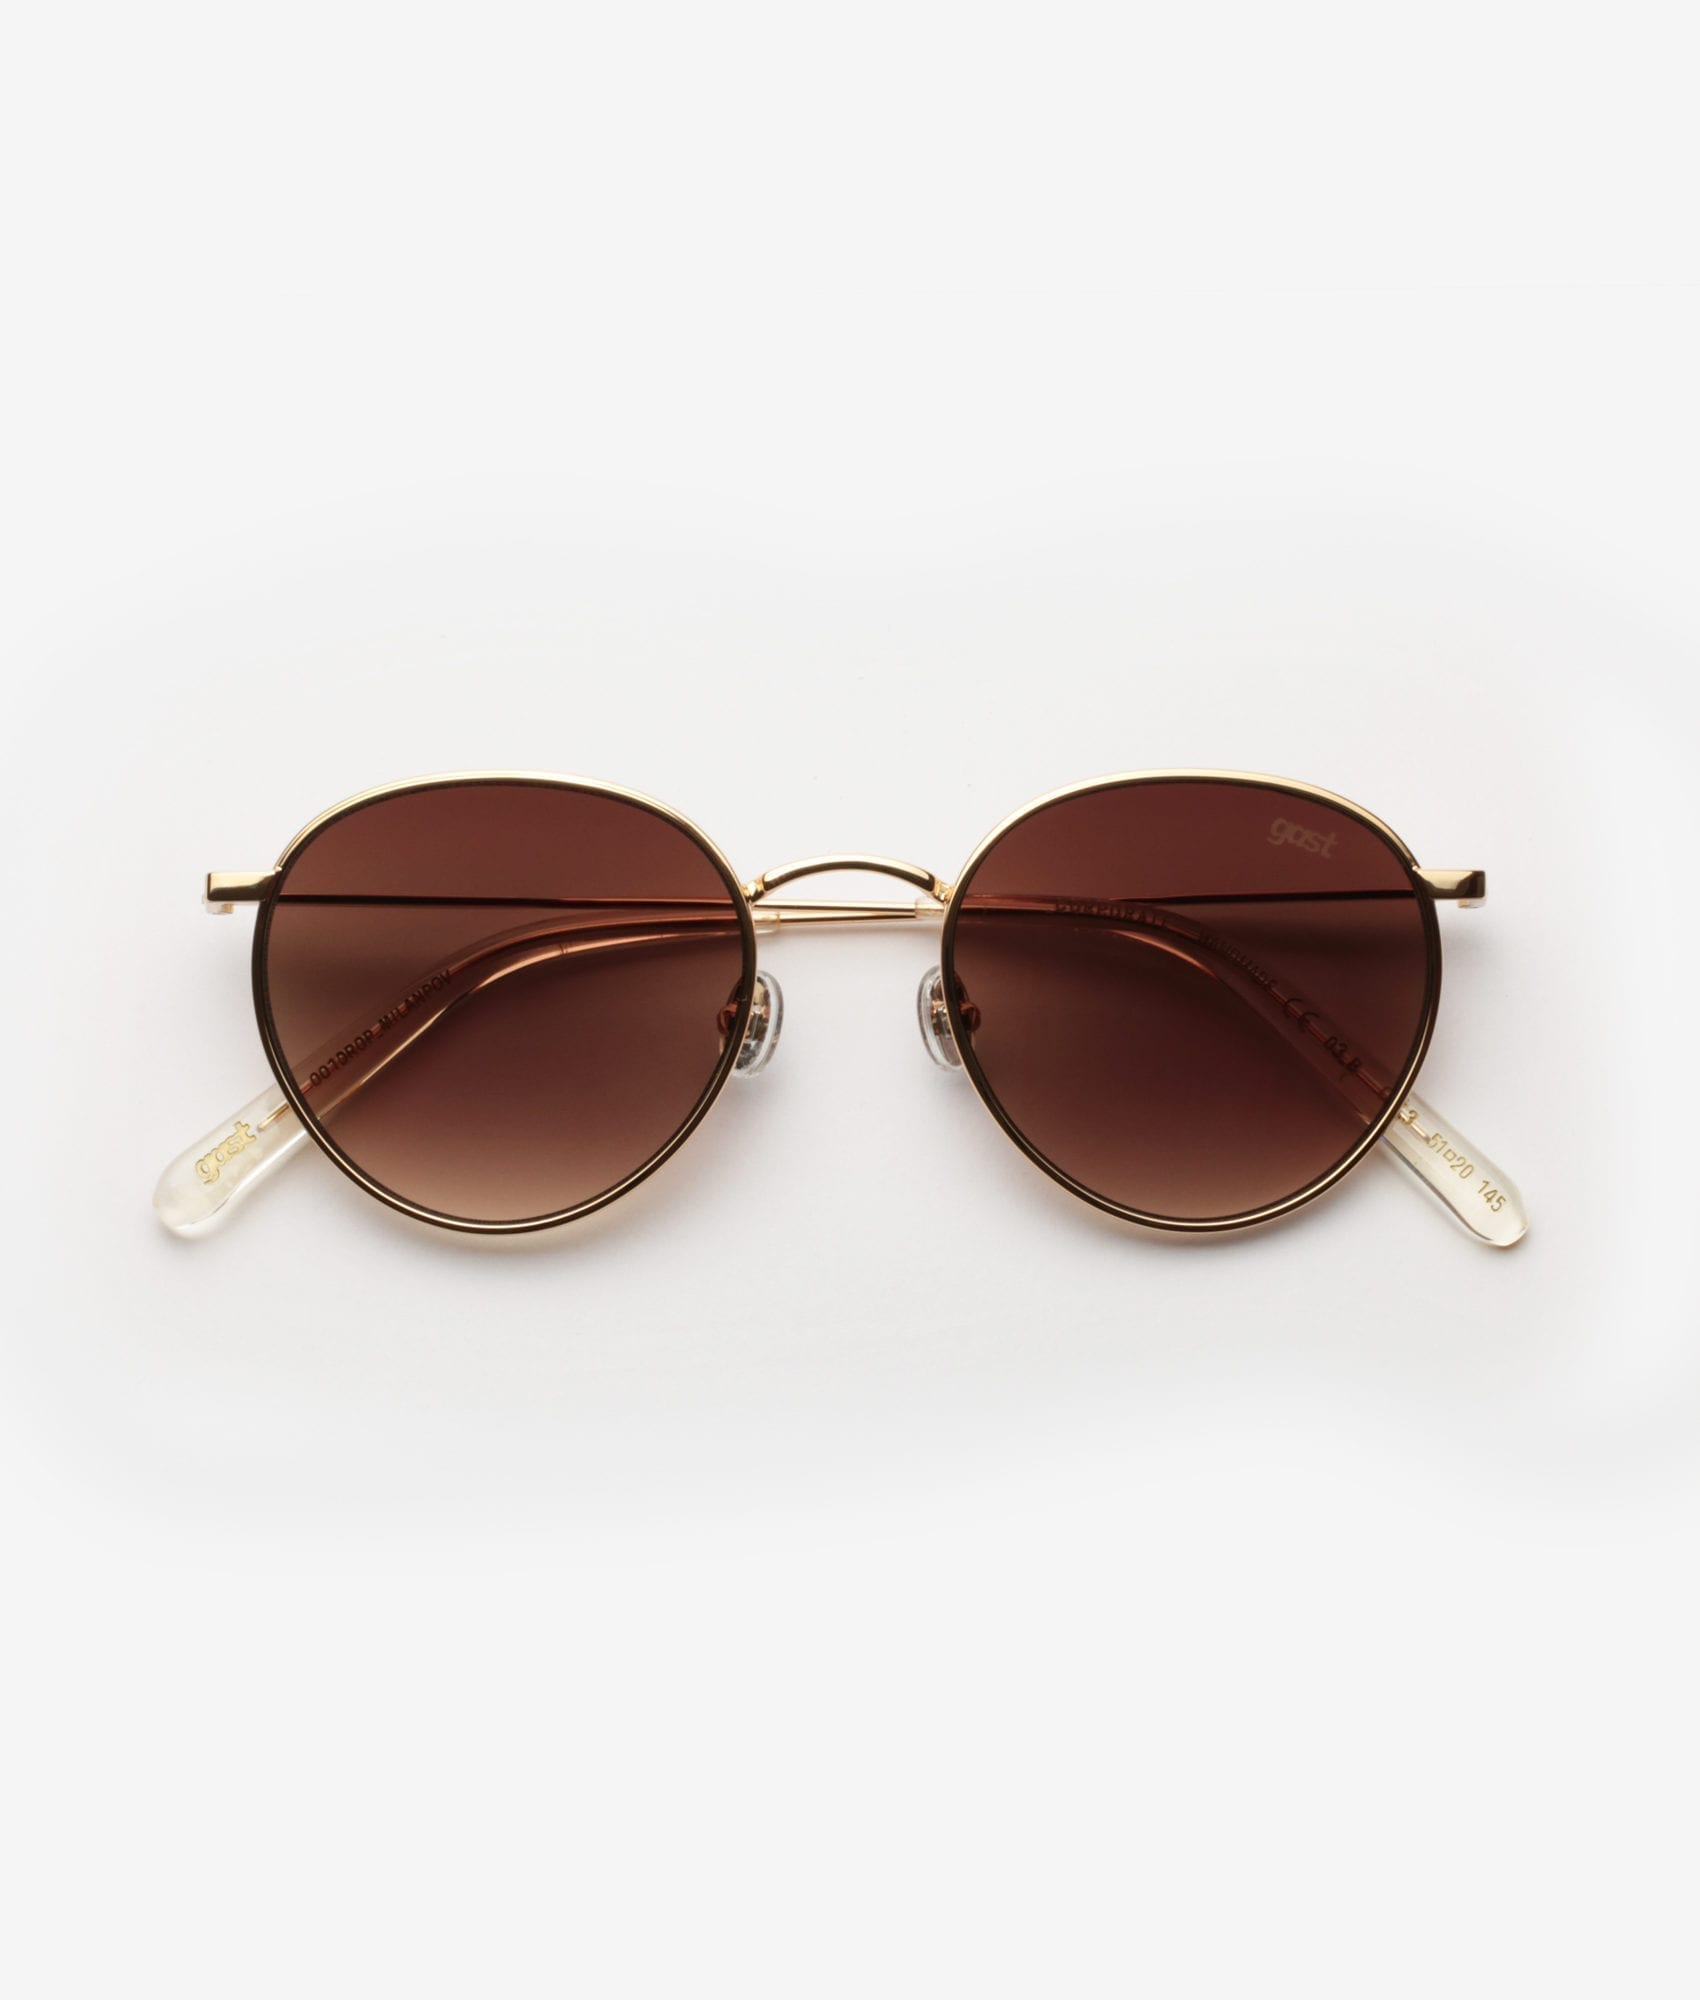 CORPORATE Gold Gast Sunglasses